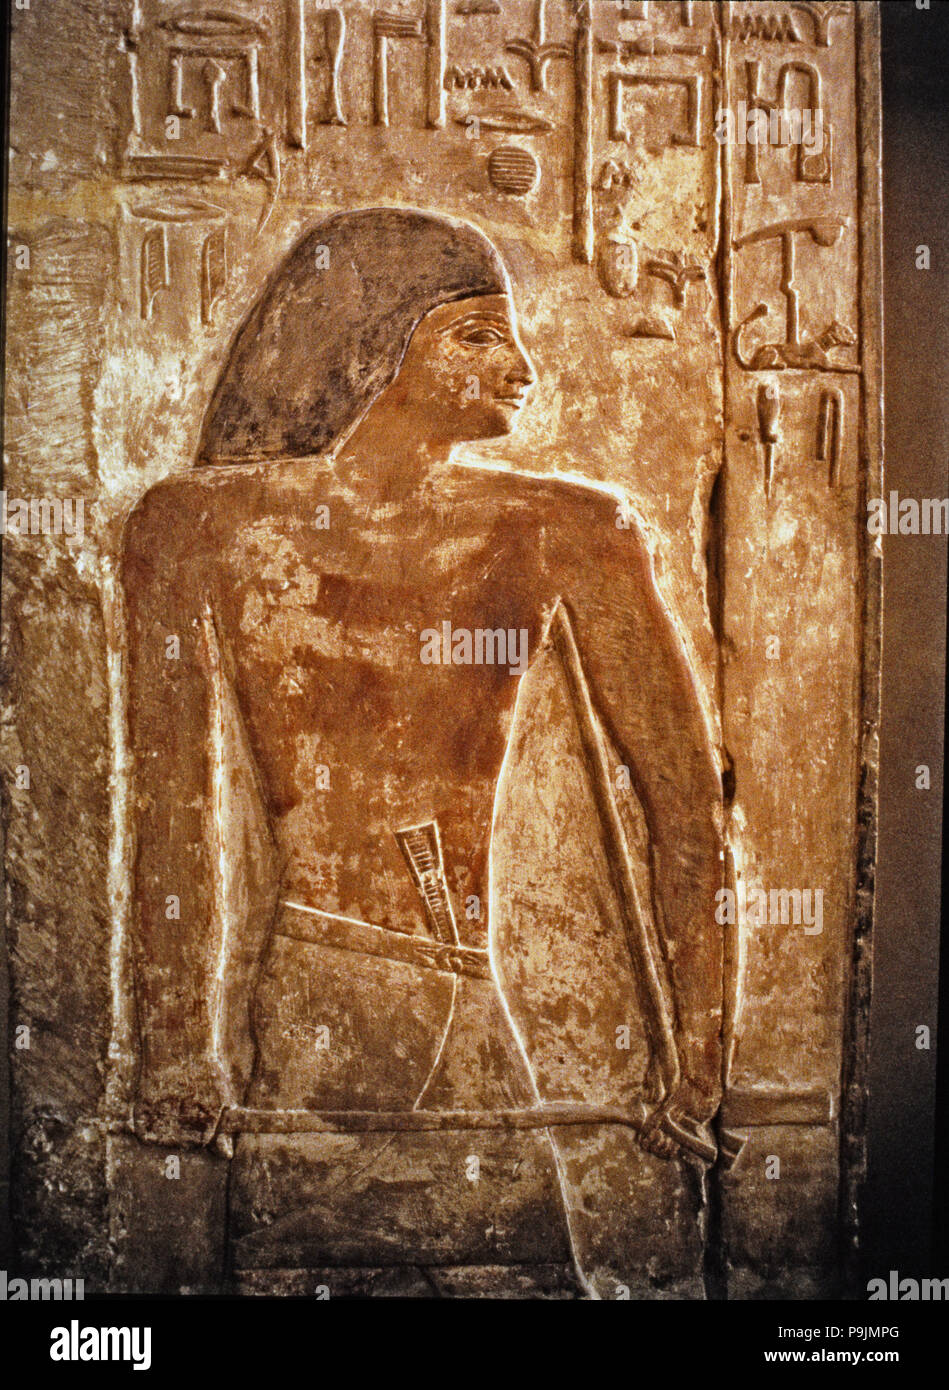 Stone relief in the door of official Meri, from Saqqara. Stock Photo